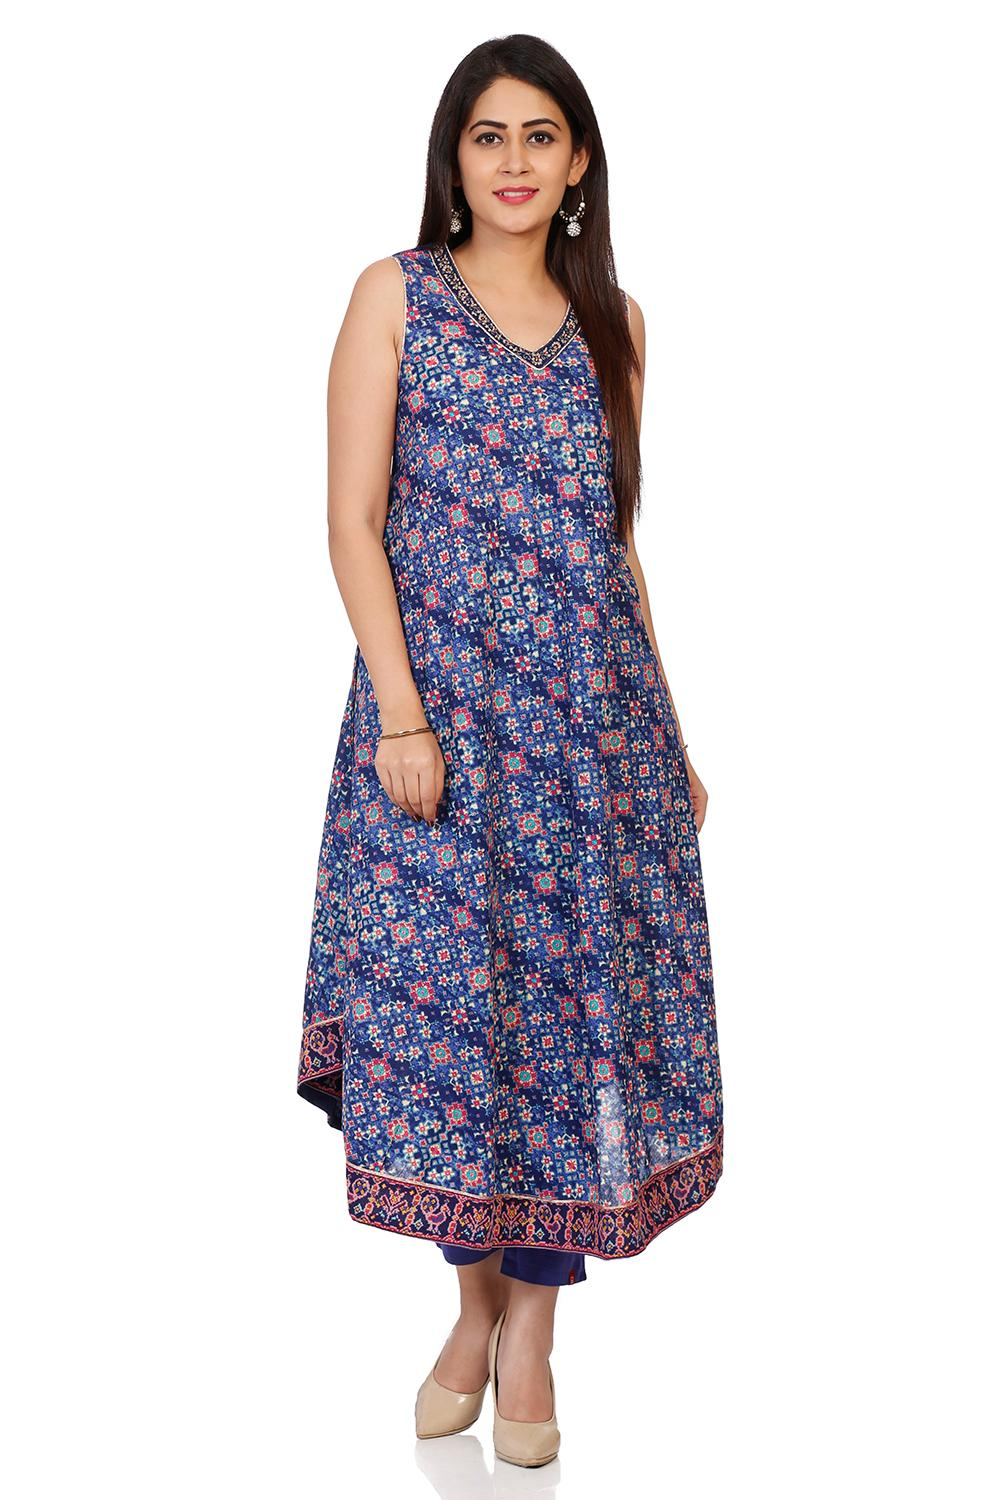 Red-Indigo Cotton Flared Dresses - INDIGO14145AW18